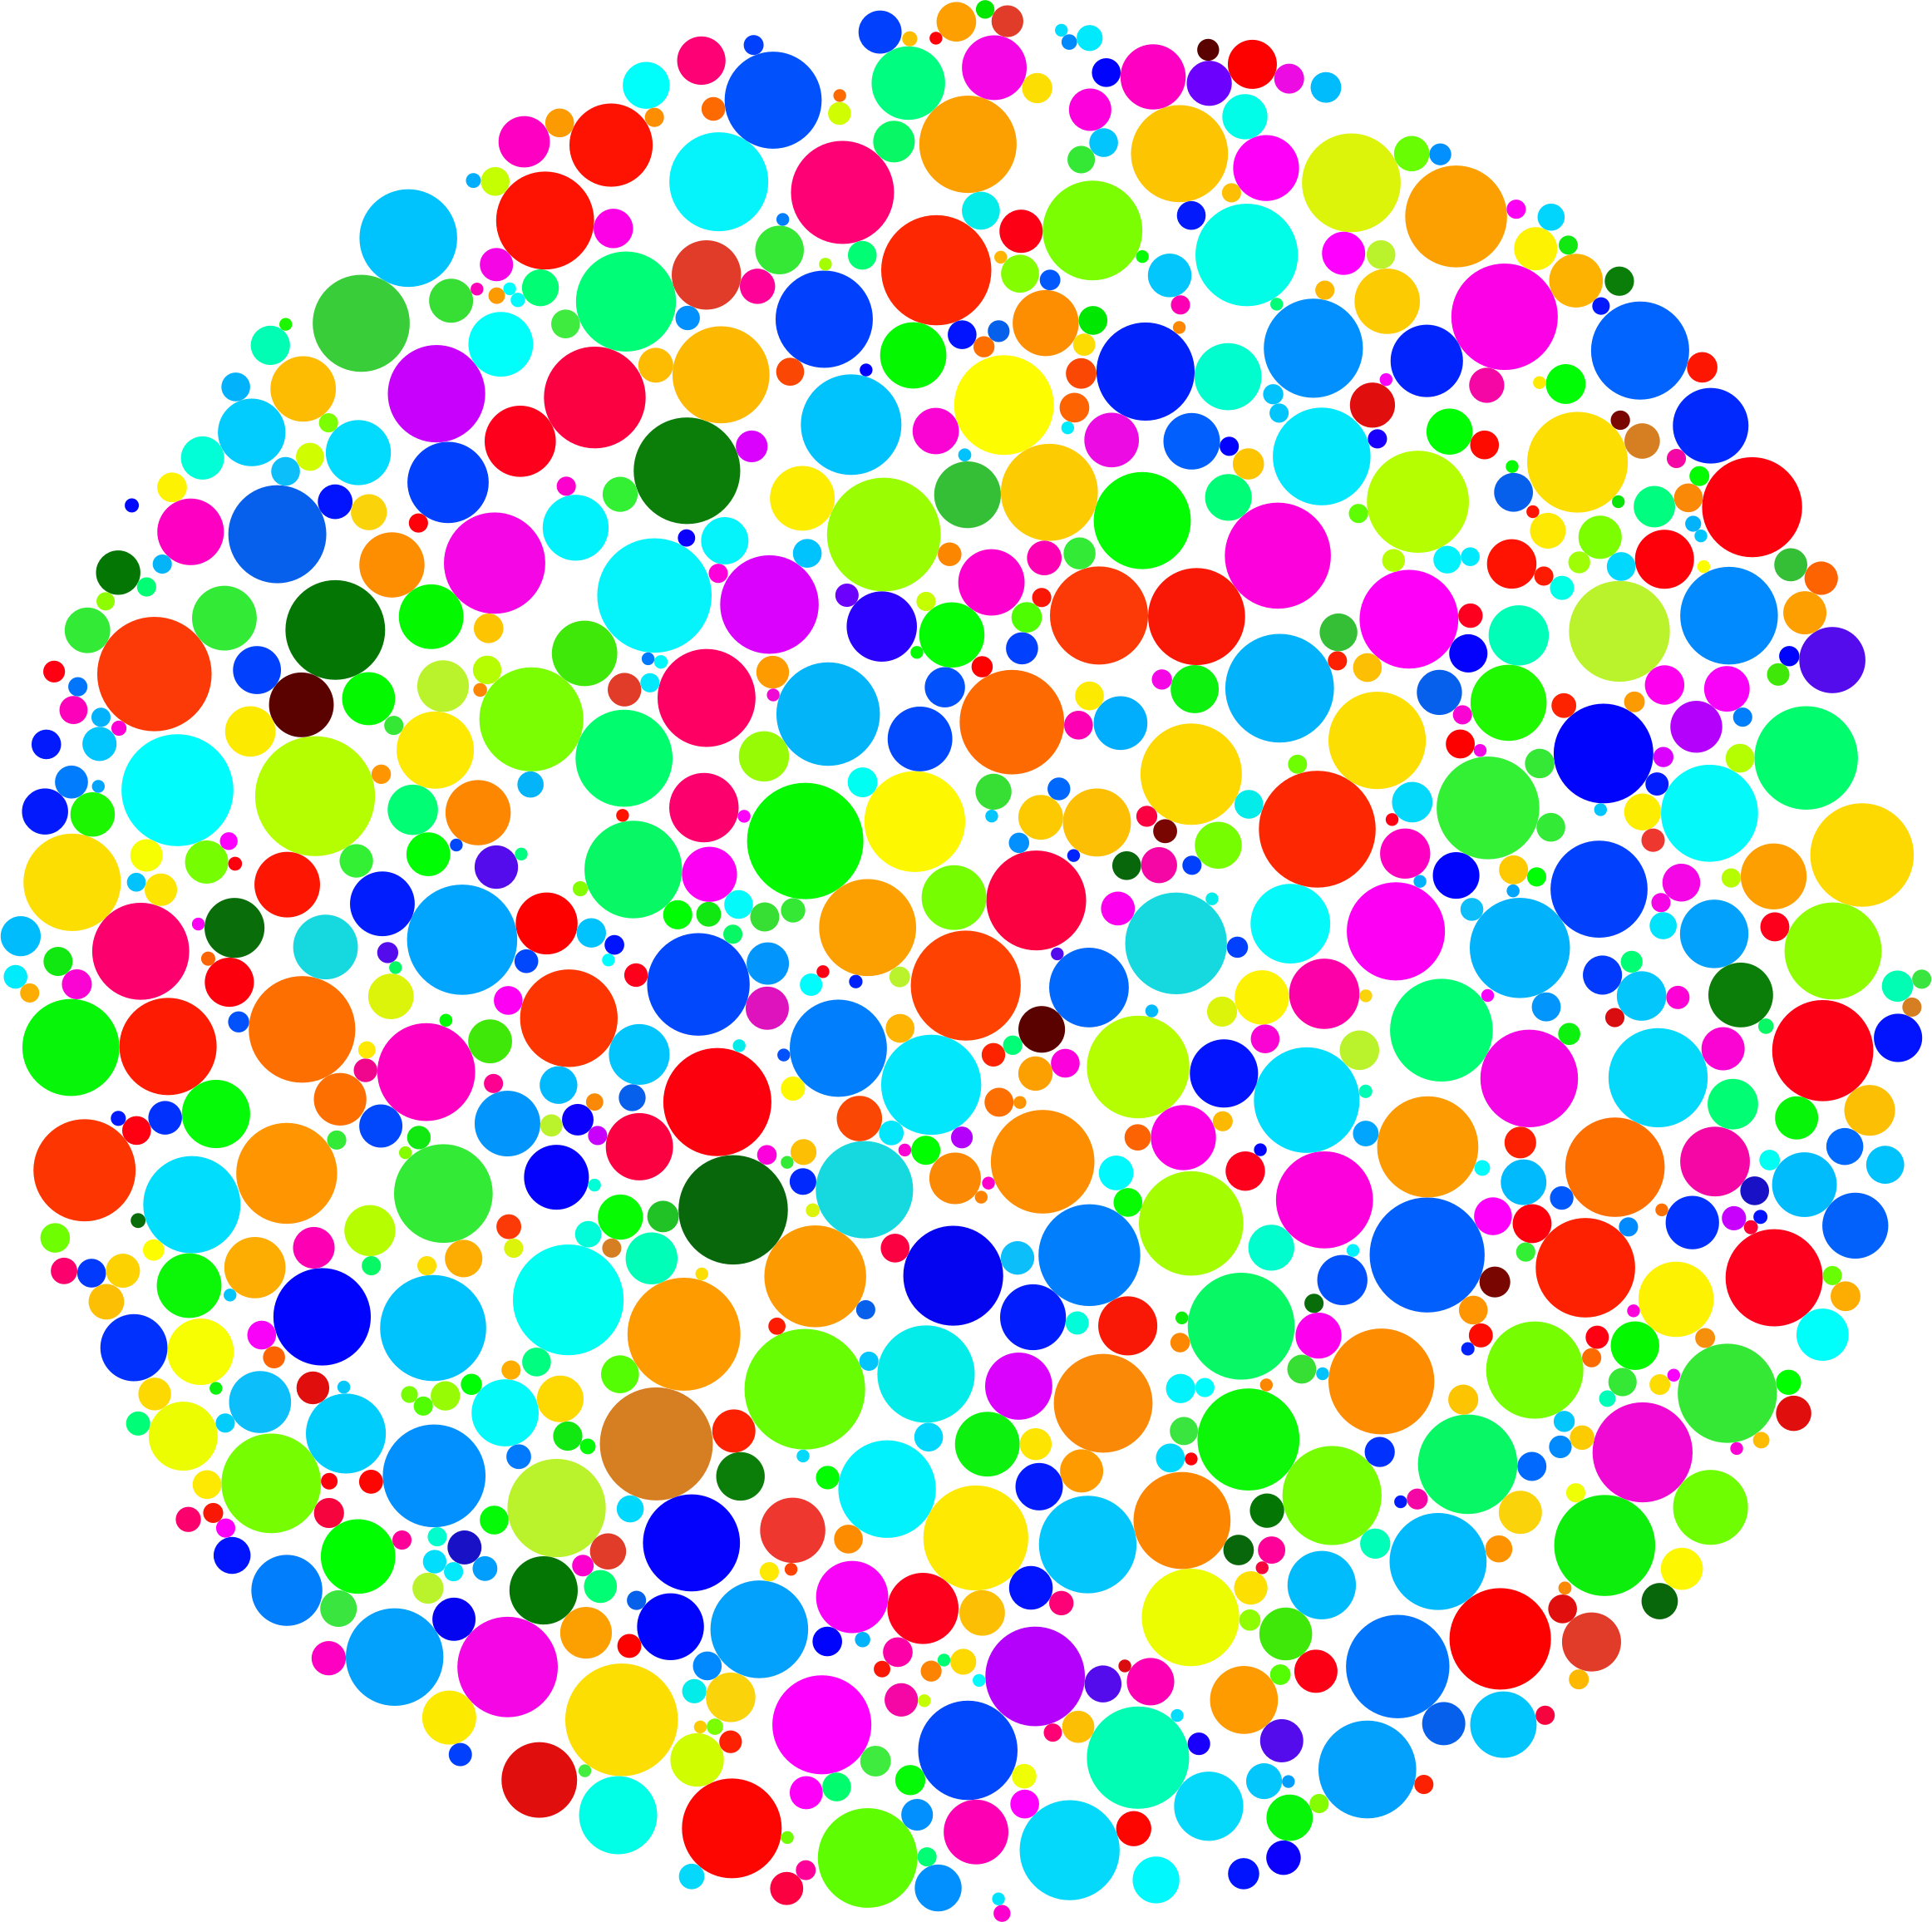 Dot clipart circle. Colorful fractal icons png